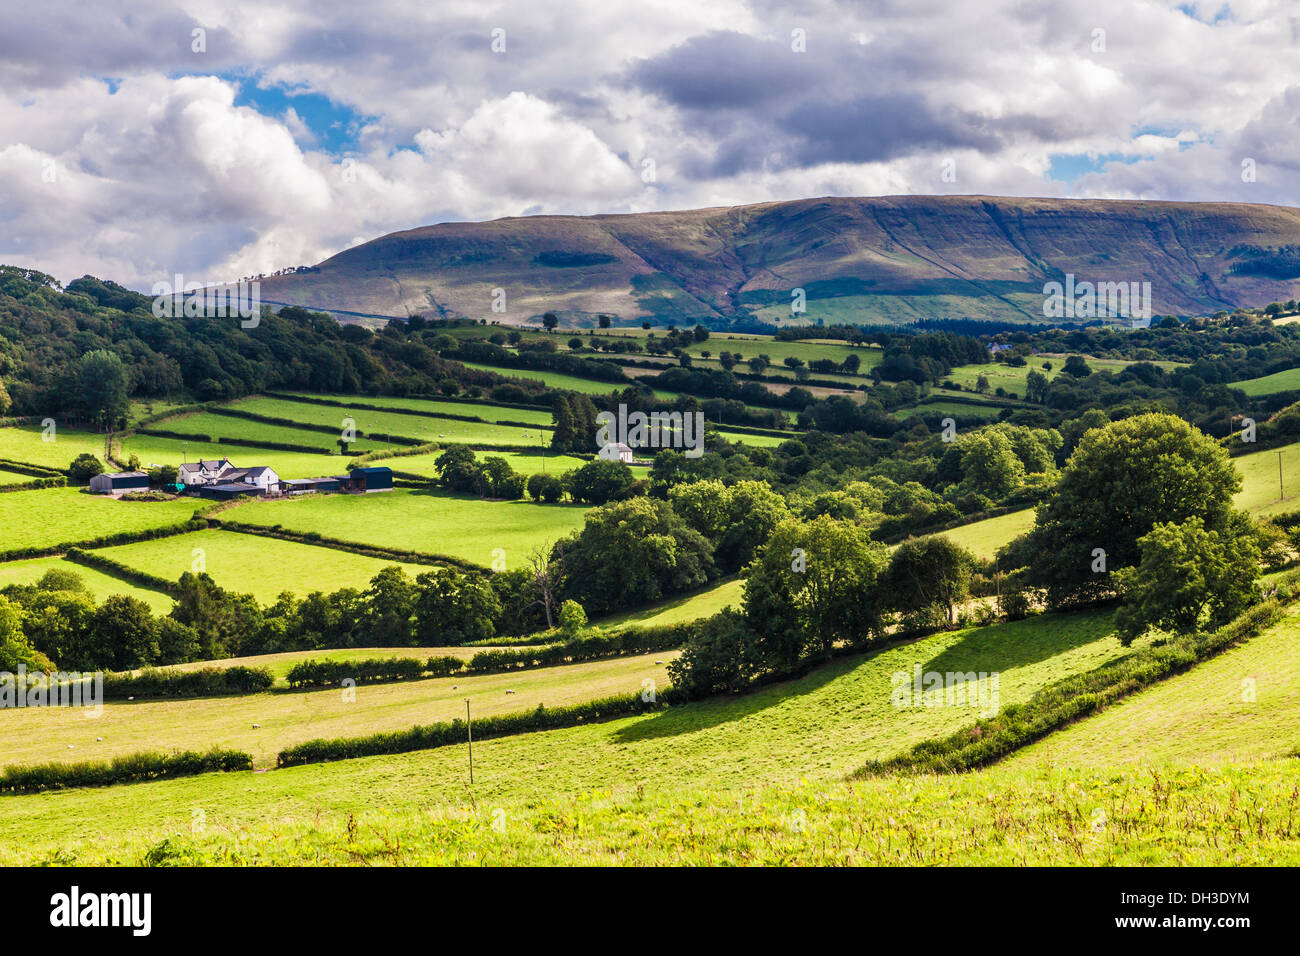 A stormy, showery summer's day in the Brecon Beacons National Park, Wales. Stock Photo